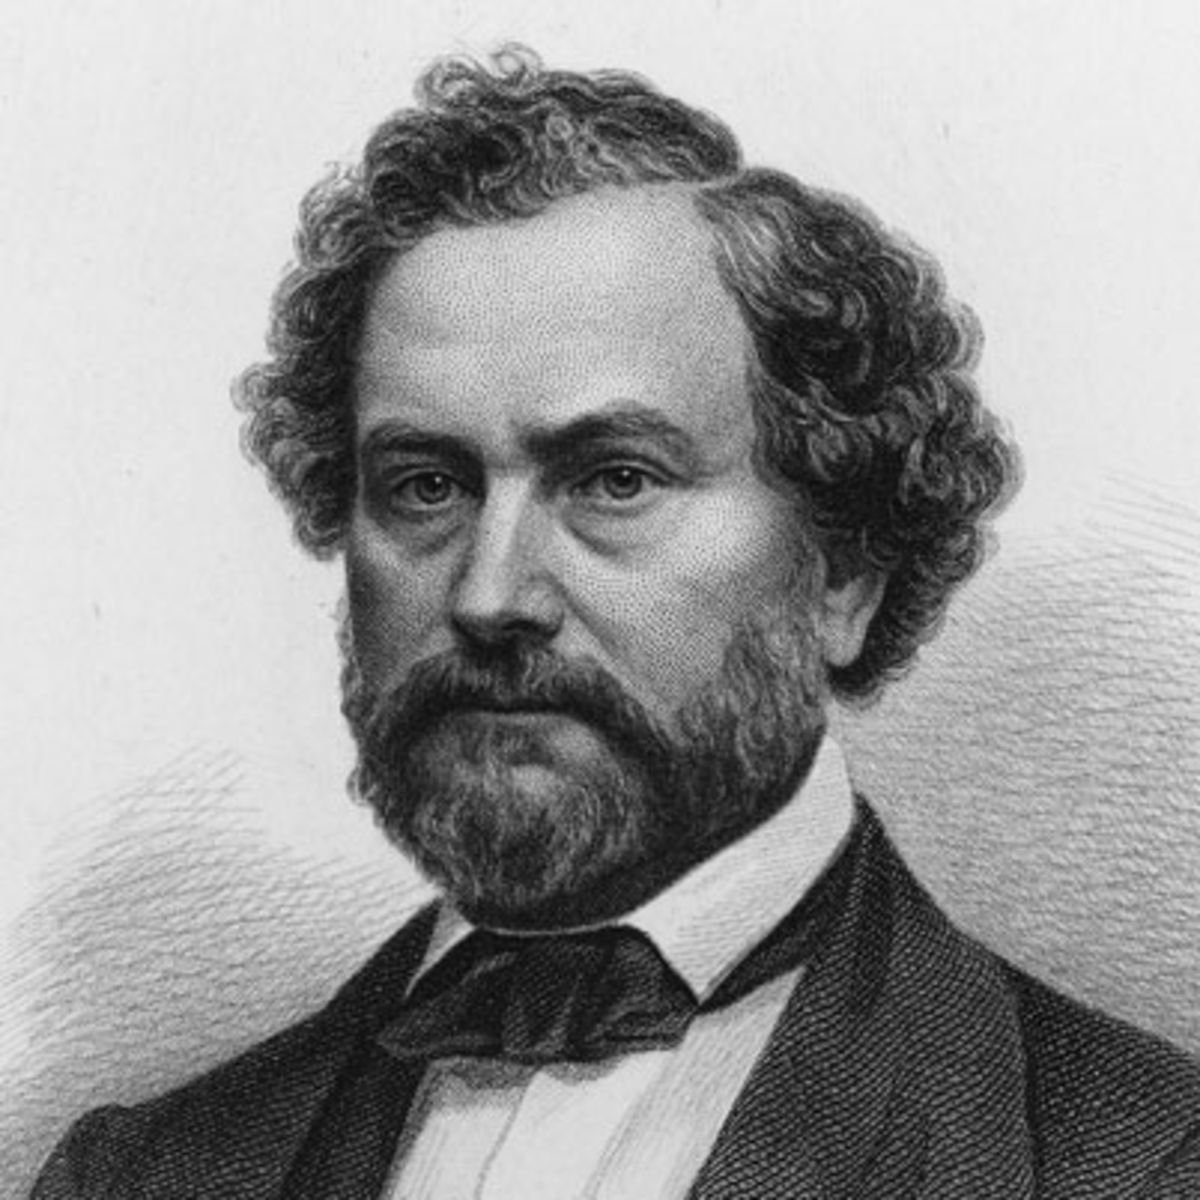 Samuel Colt Photo: biography